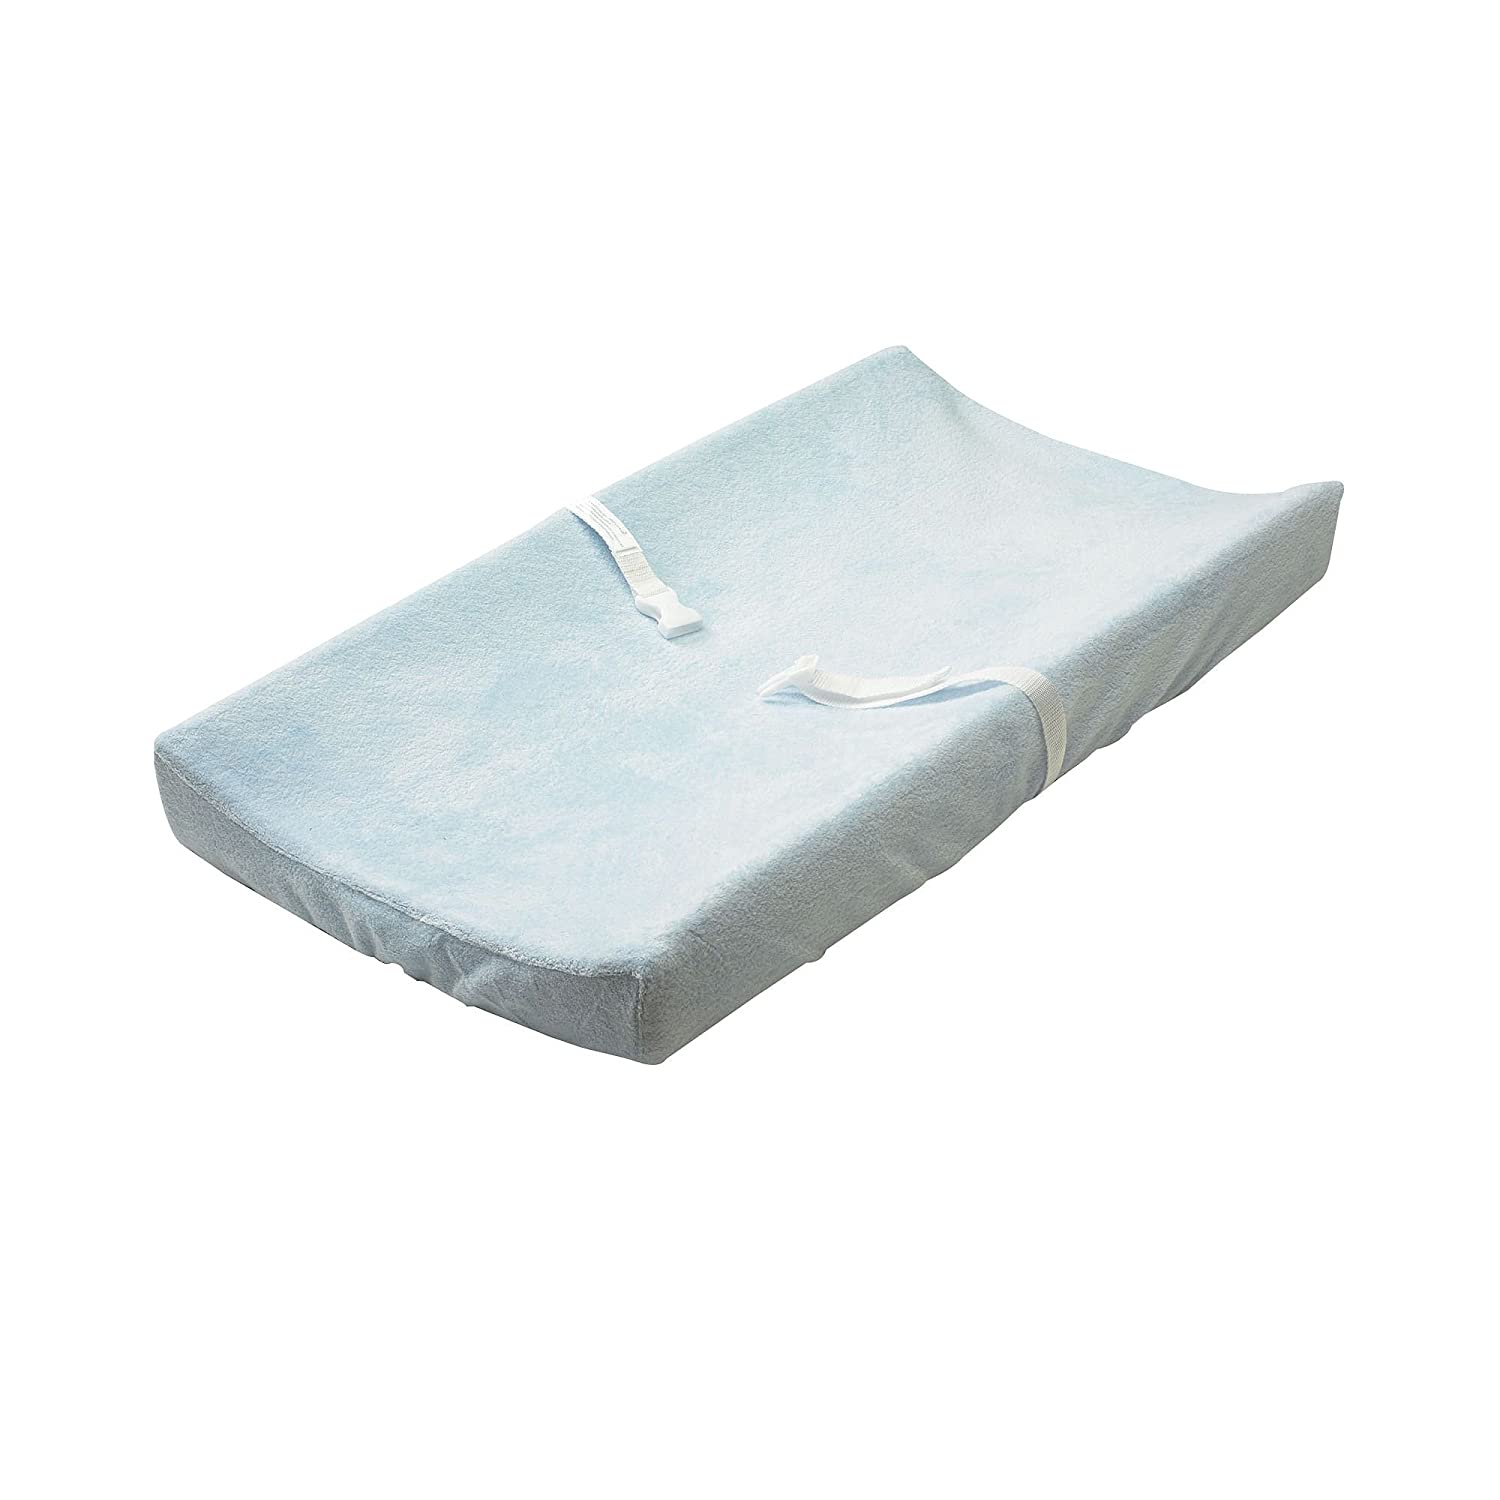 Summer Infant Ultra Plush Changing Pad Cover 2 Pack Blue SG/_B0097ZFMDY/_US AM-SUMR-UPCP-2PBX